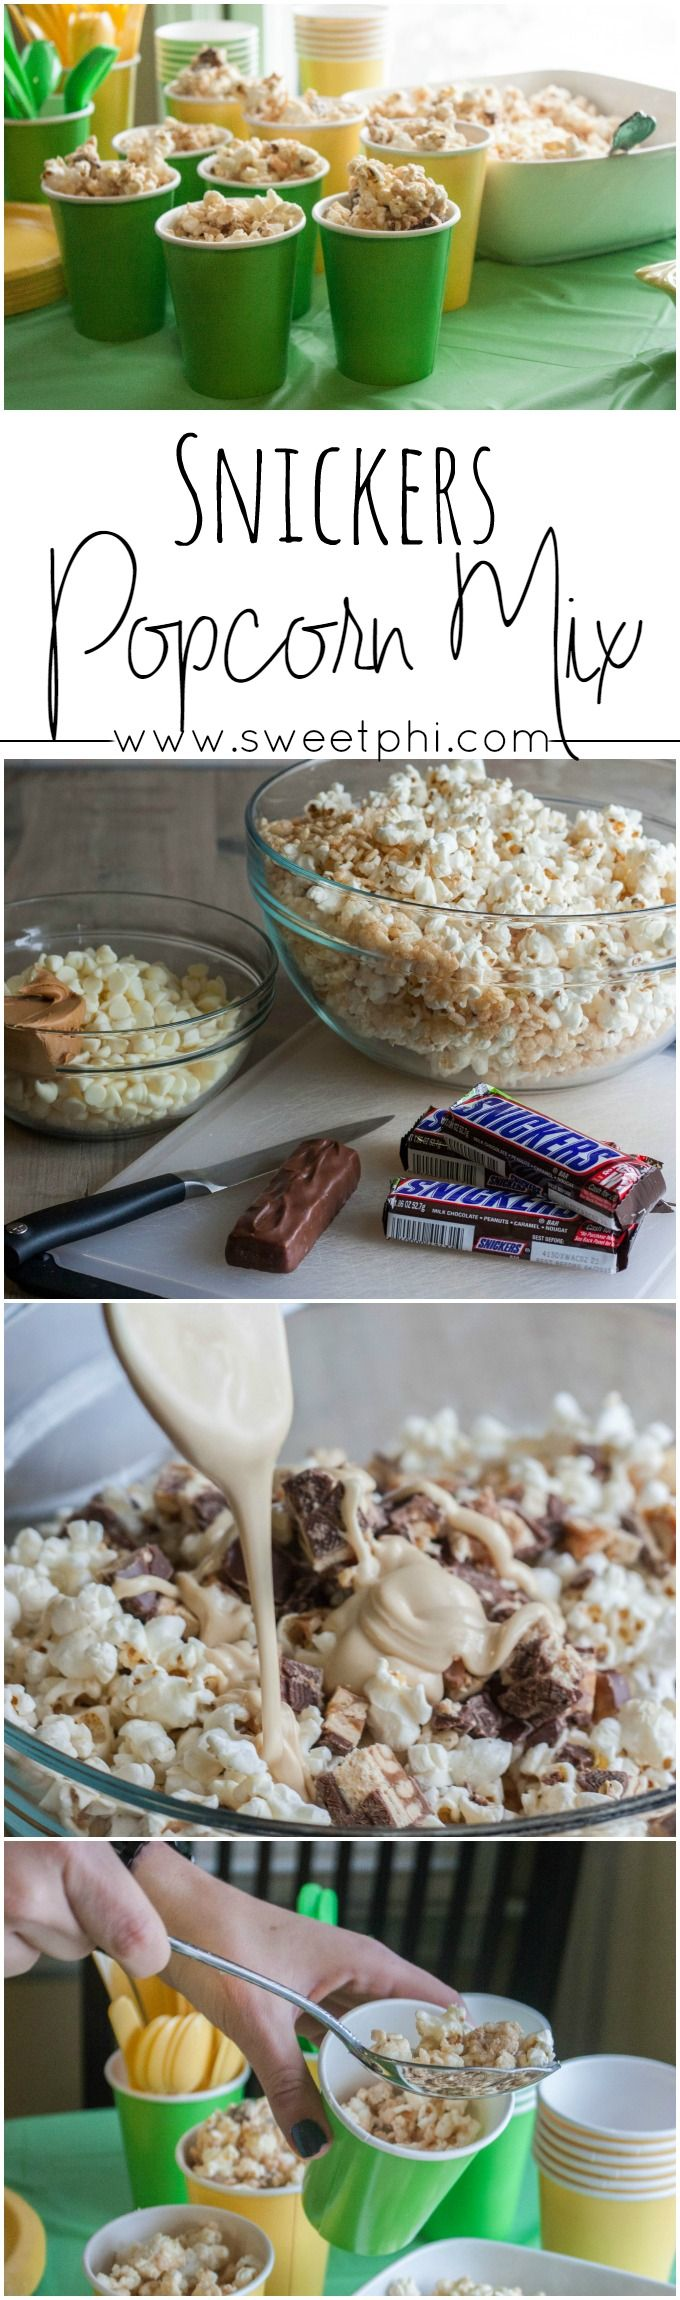 Snickers popcorn mix, football party food, game day snacks, #gamedayfood #footballparty #popcornmix , the best and most addictive popcorn mix, the best popcorn snack, white chocolate peanut butter popcorn http://www.sweetphi.com/green-gold-football-party-skittles-cupcake-snickers-popcorn-mix/